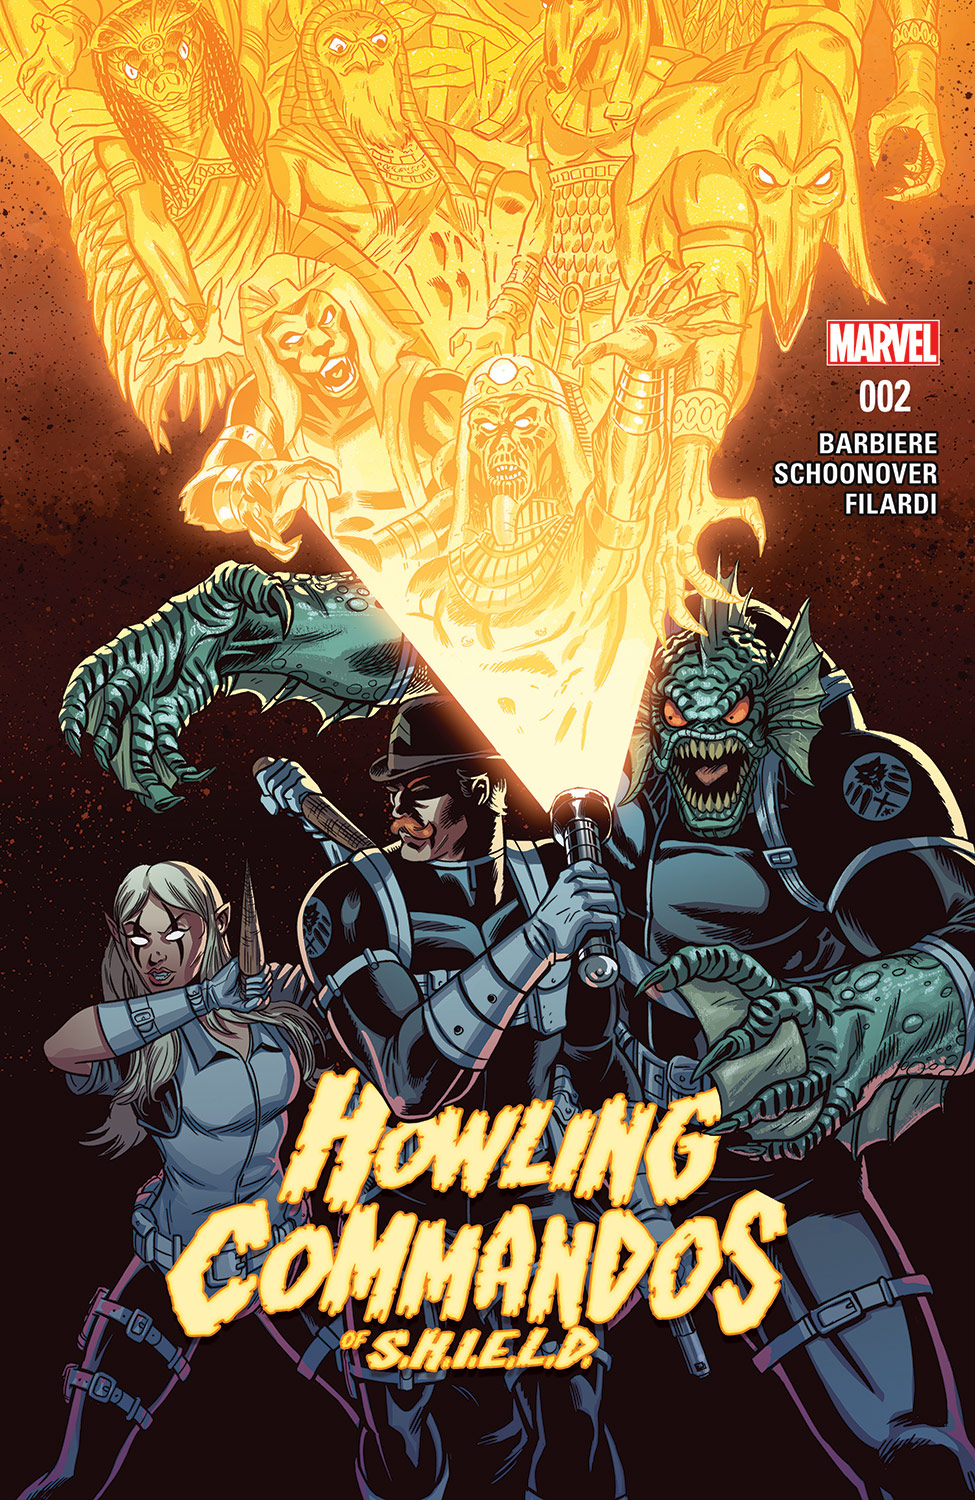 Howling Commandos of S.H.I.E.L.D. (2015) #2